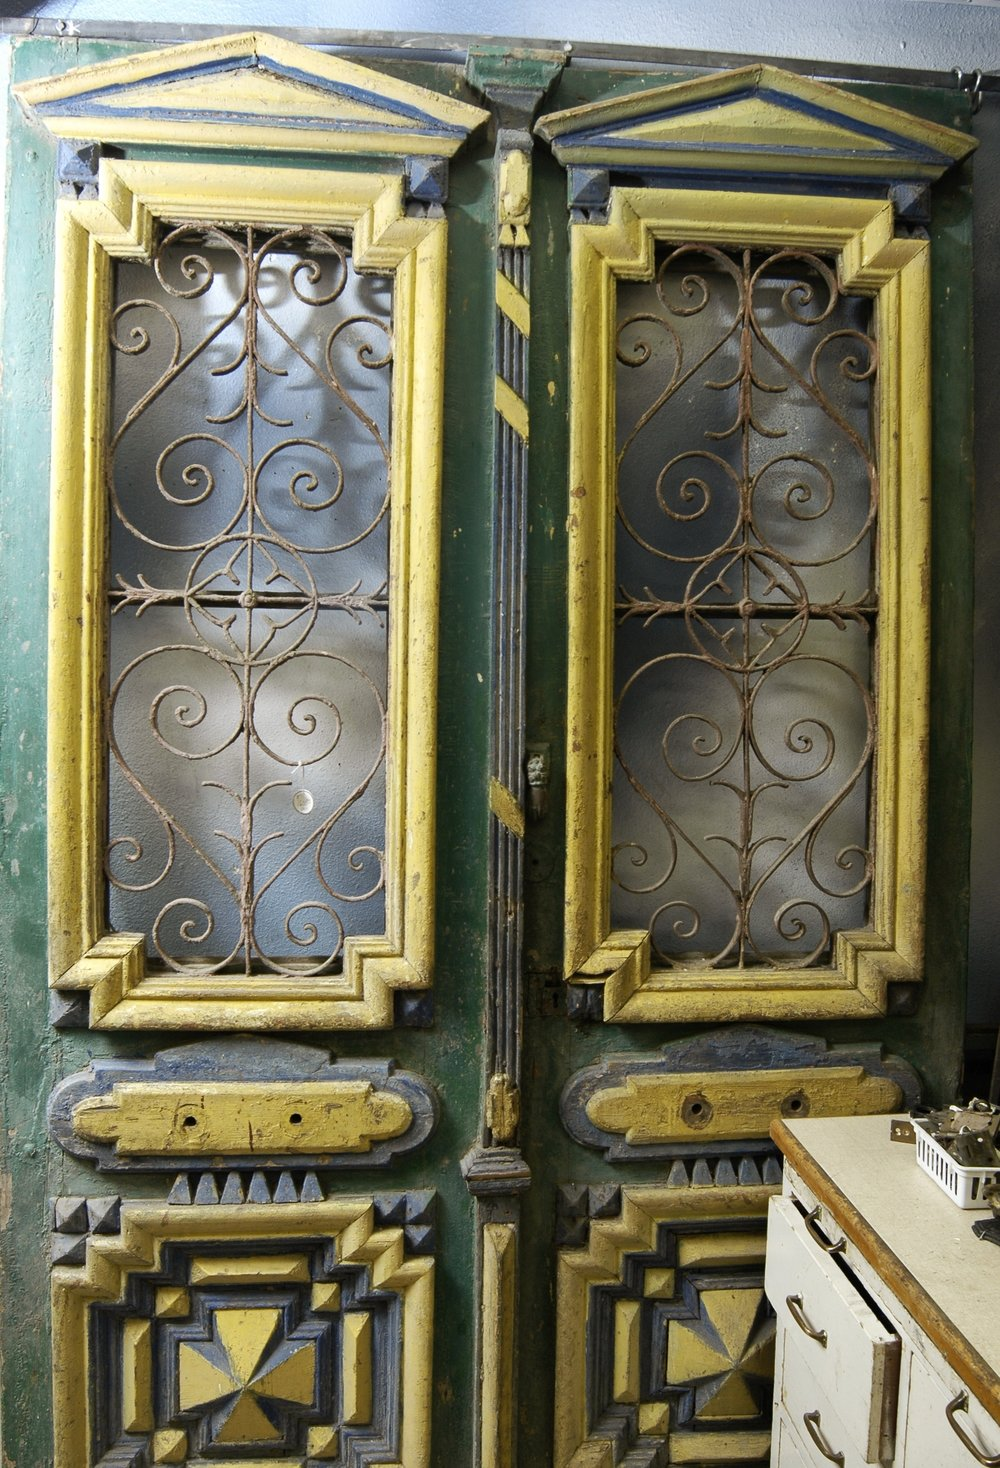 Doors - Big variety, hundreds of doors. Victorian, craftsman, rustic—lots of doors. Front doors, interior panel doors, french doors, odd styles & sizes, and grand & unusual.